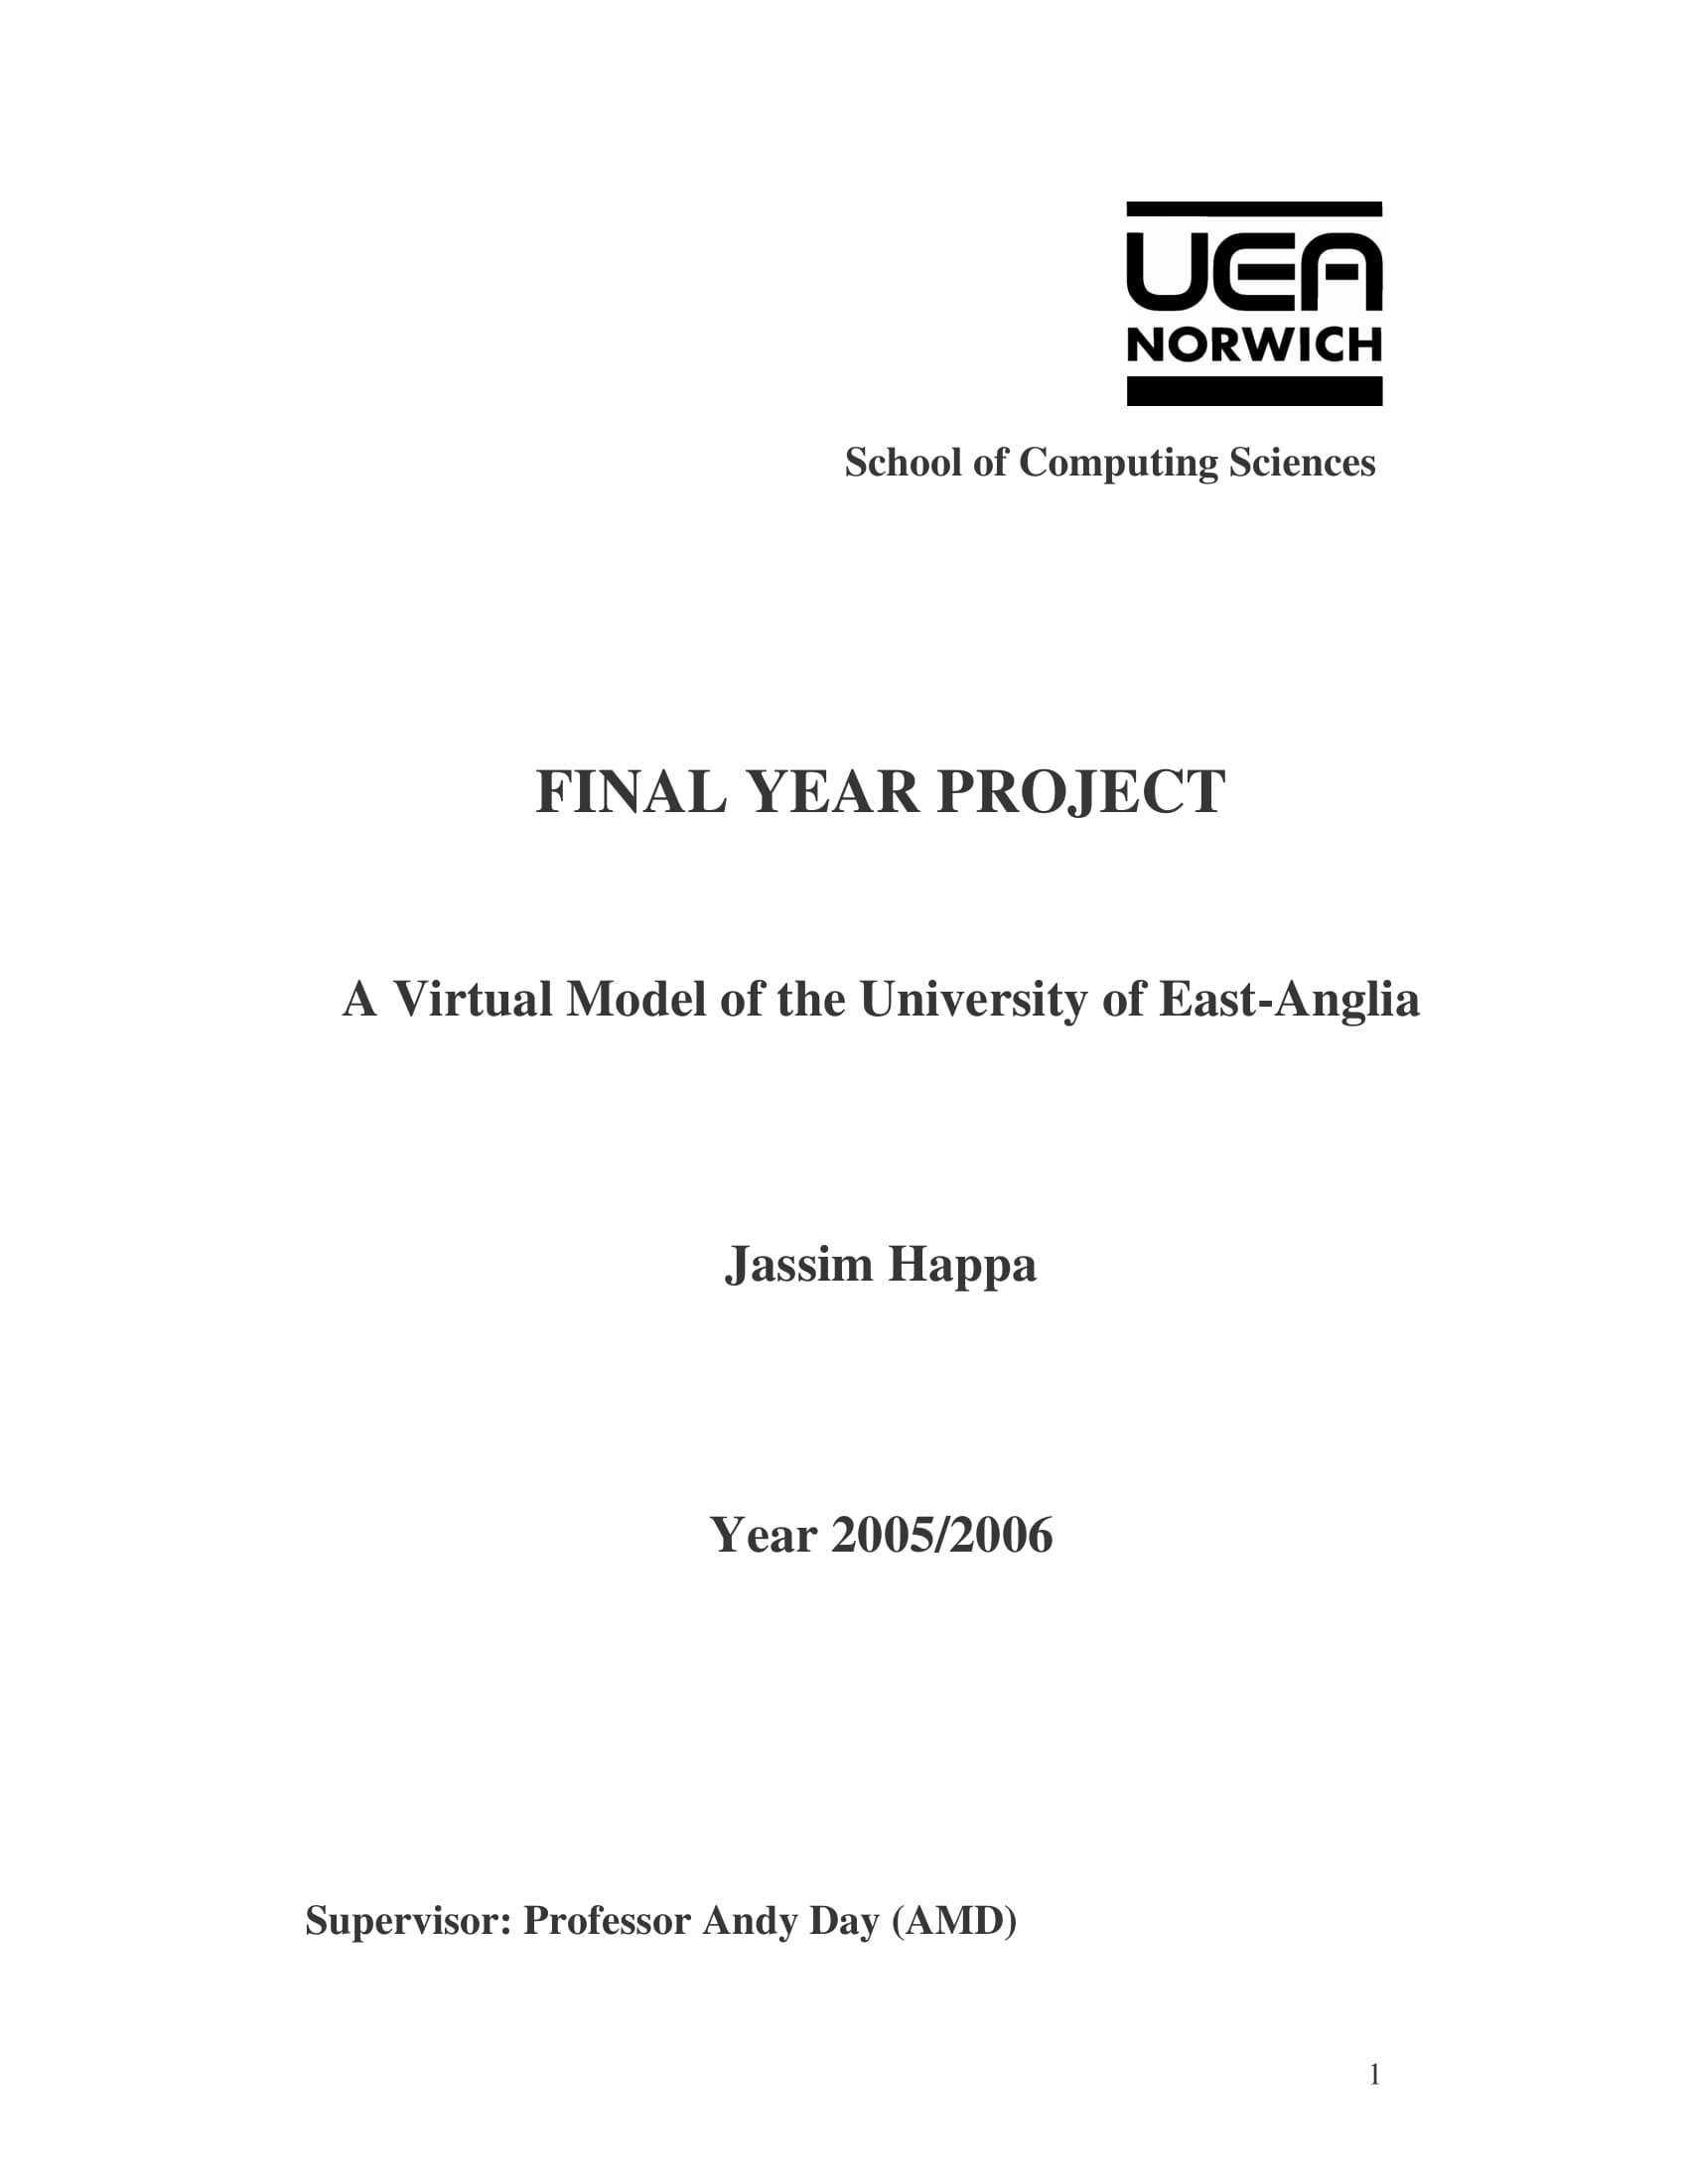 detailed final year project proposal example 01